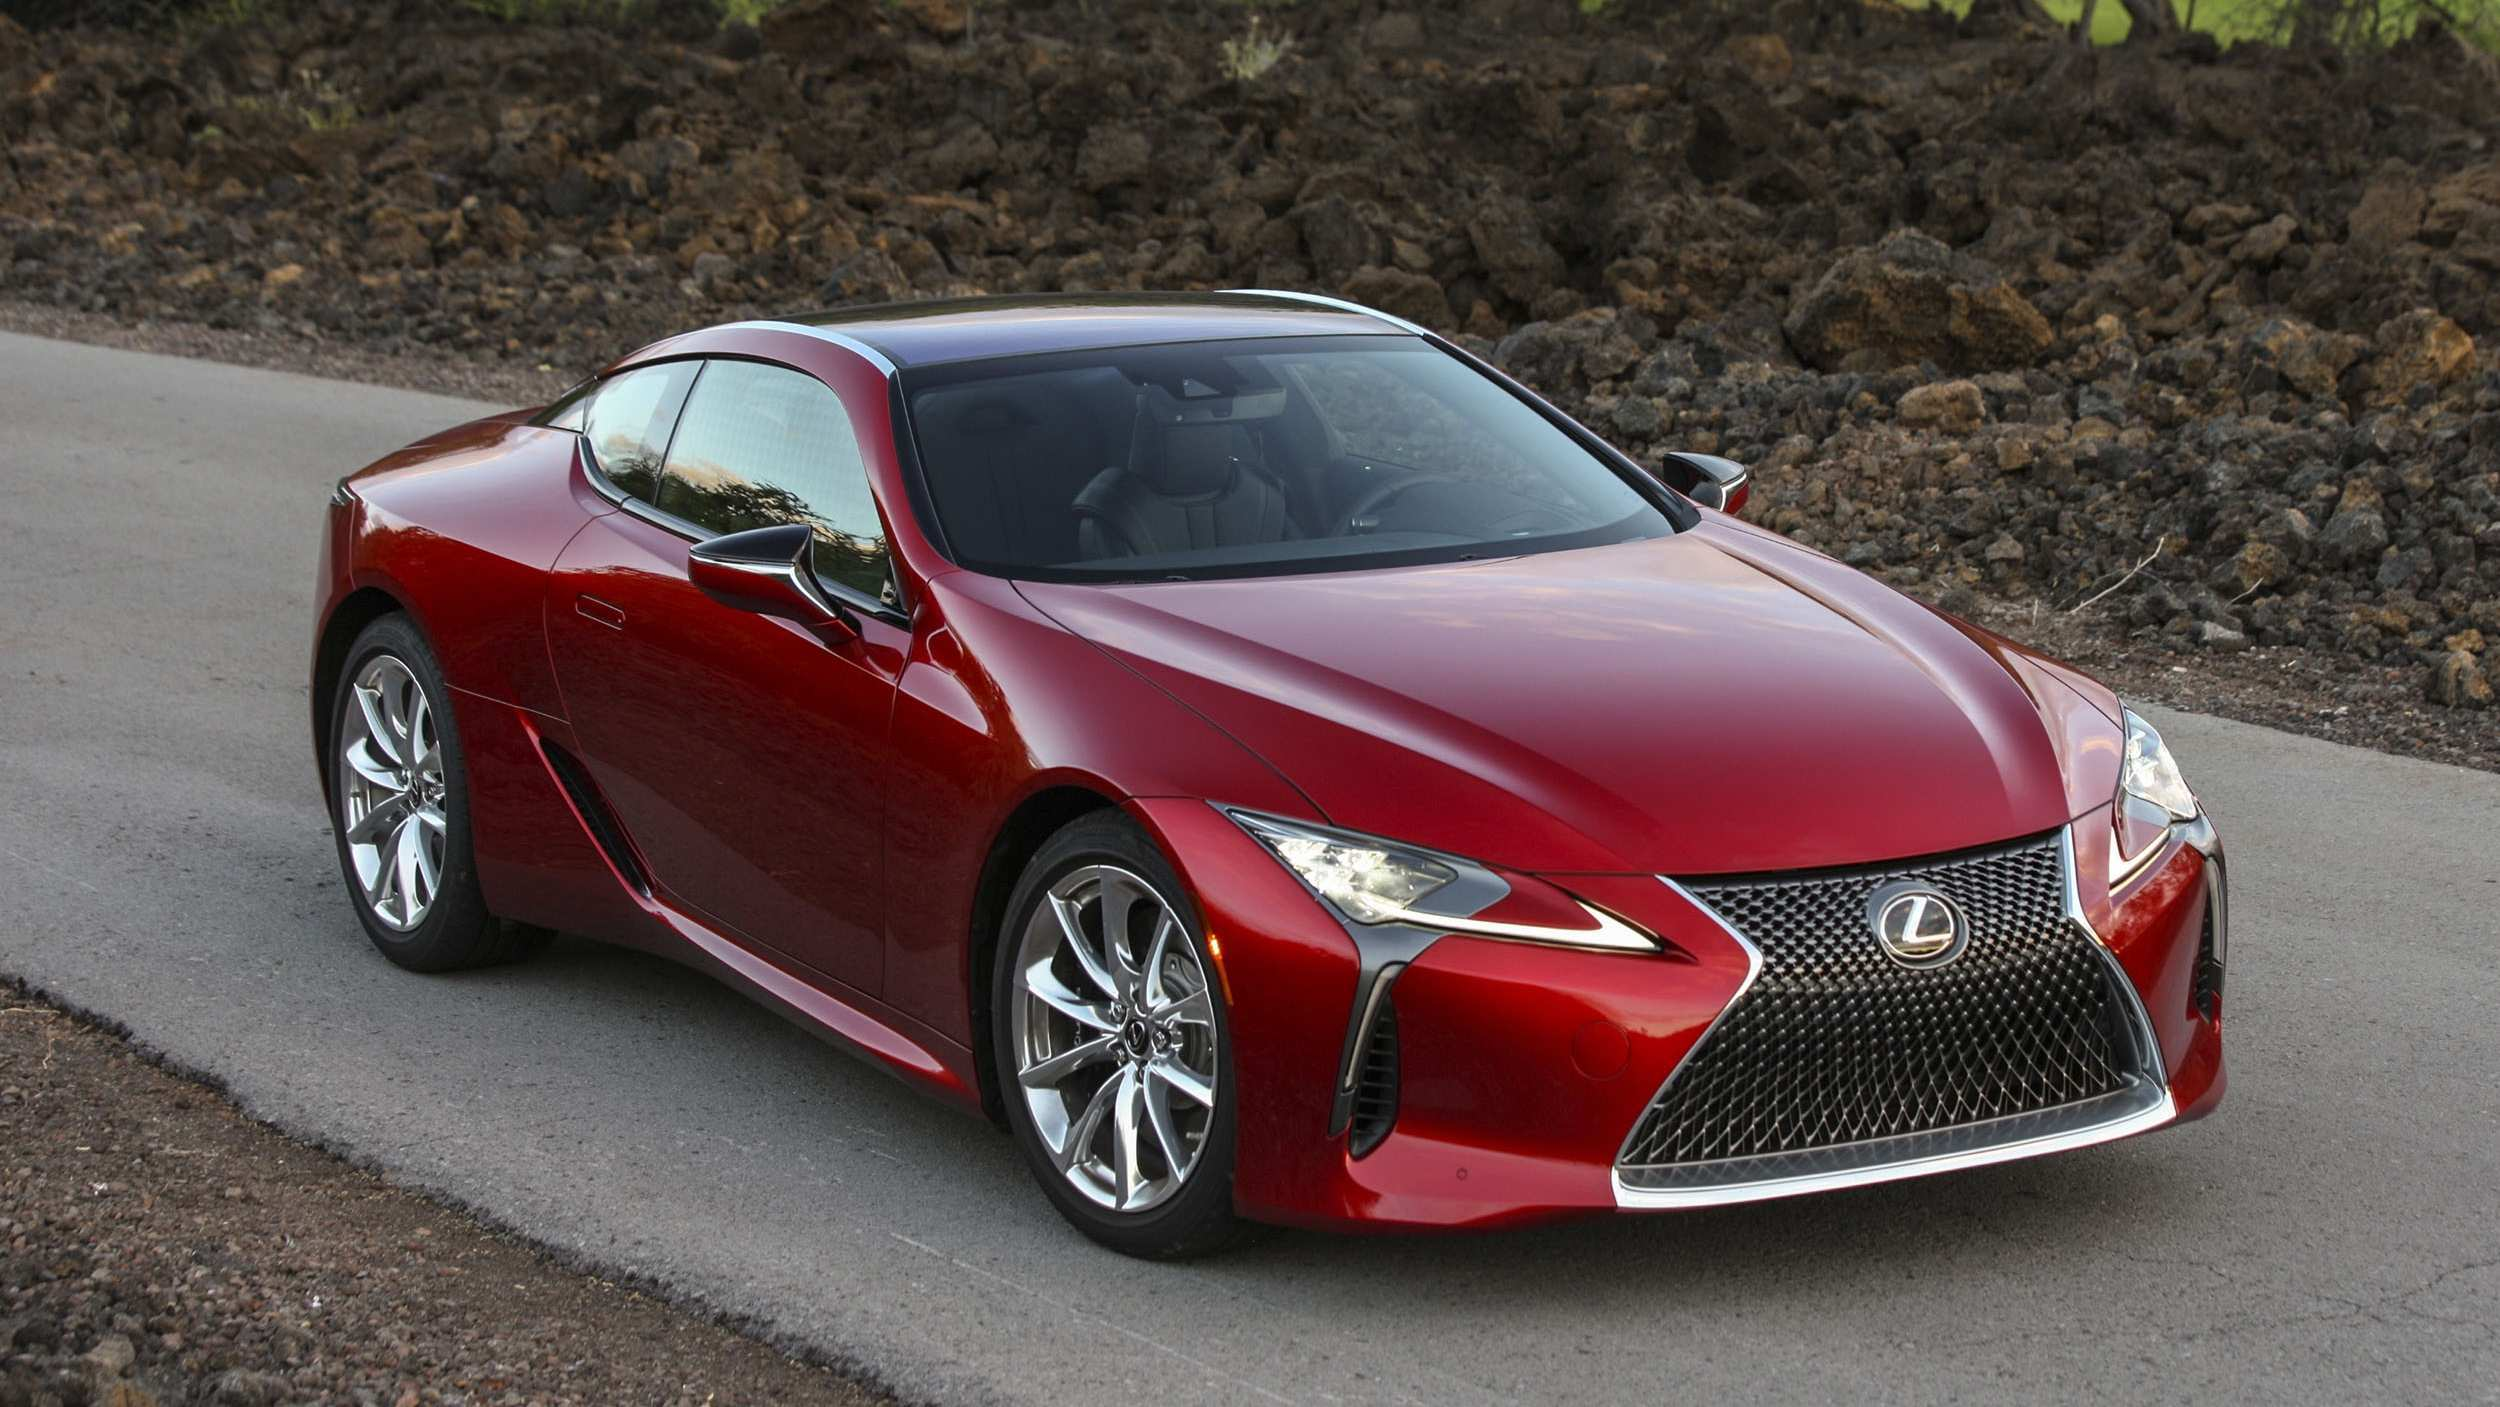 99 A 2020 Lexus Lf Lc Concept And Review